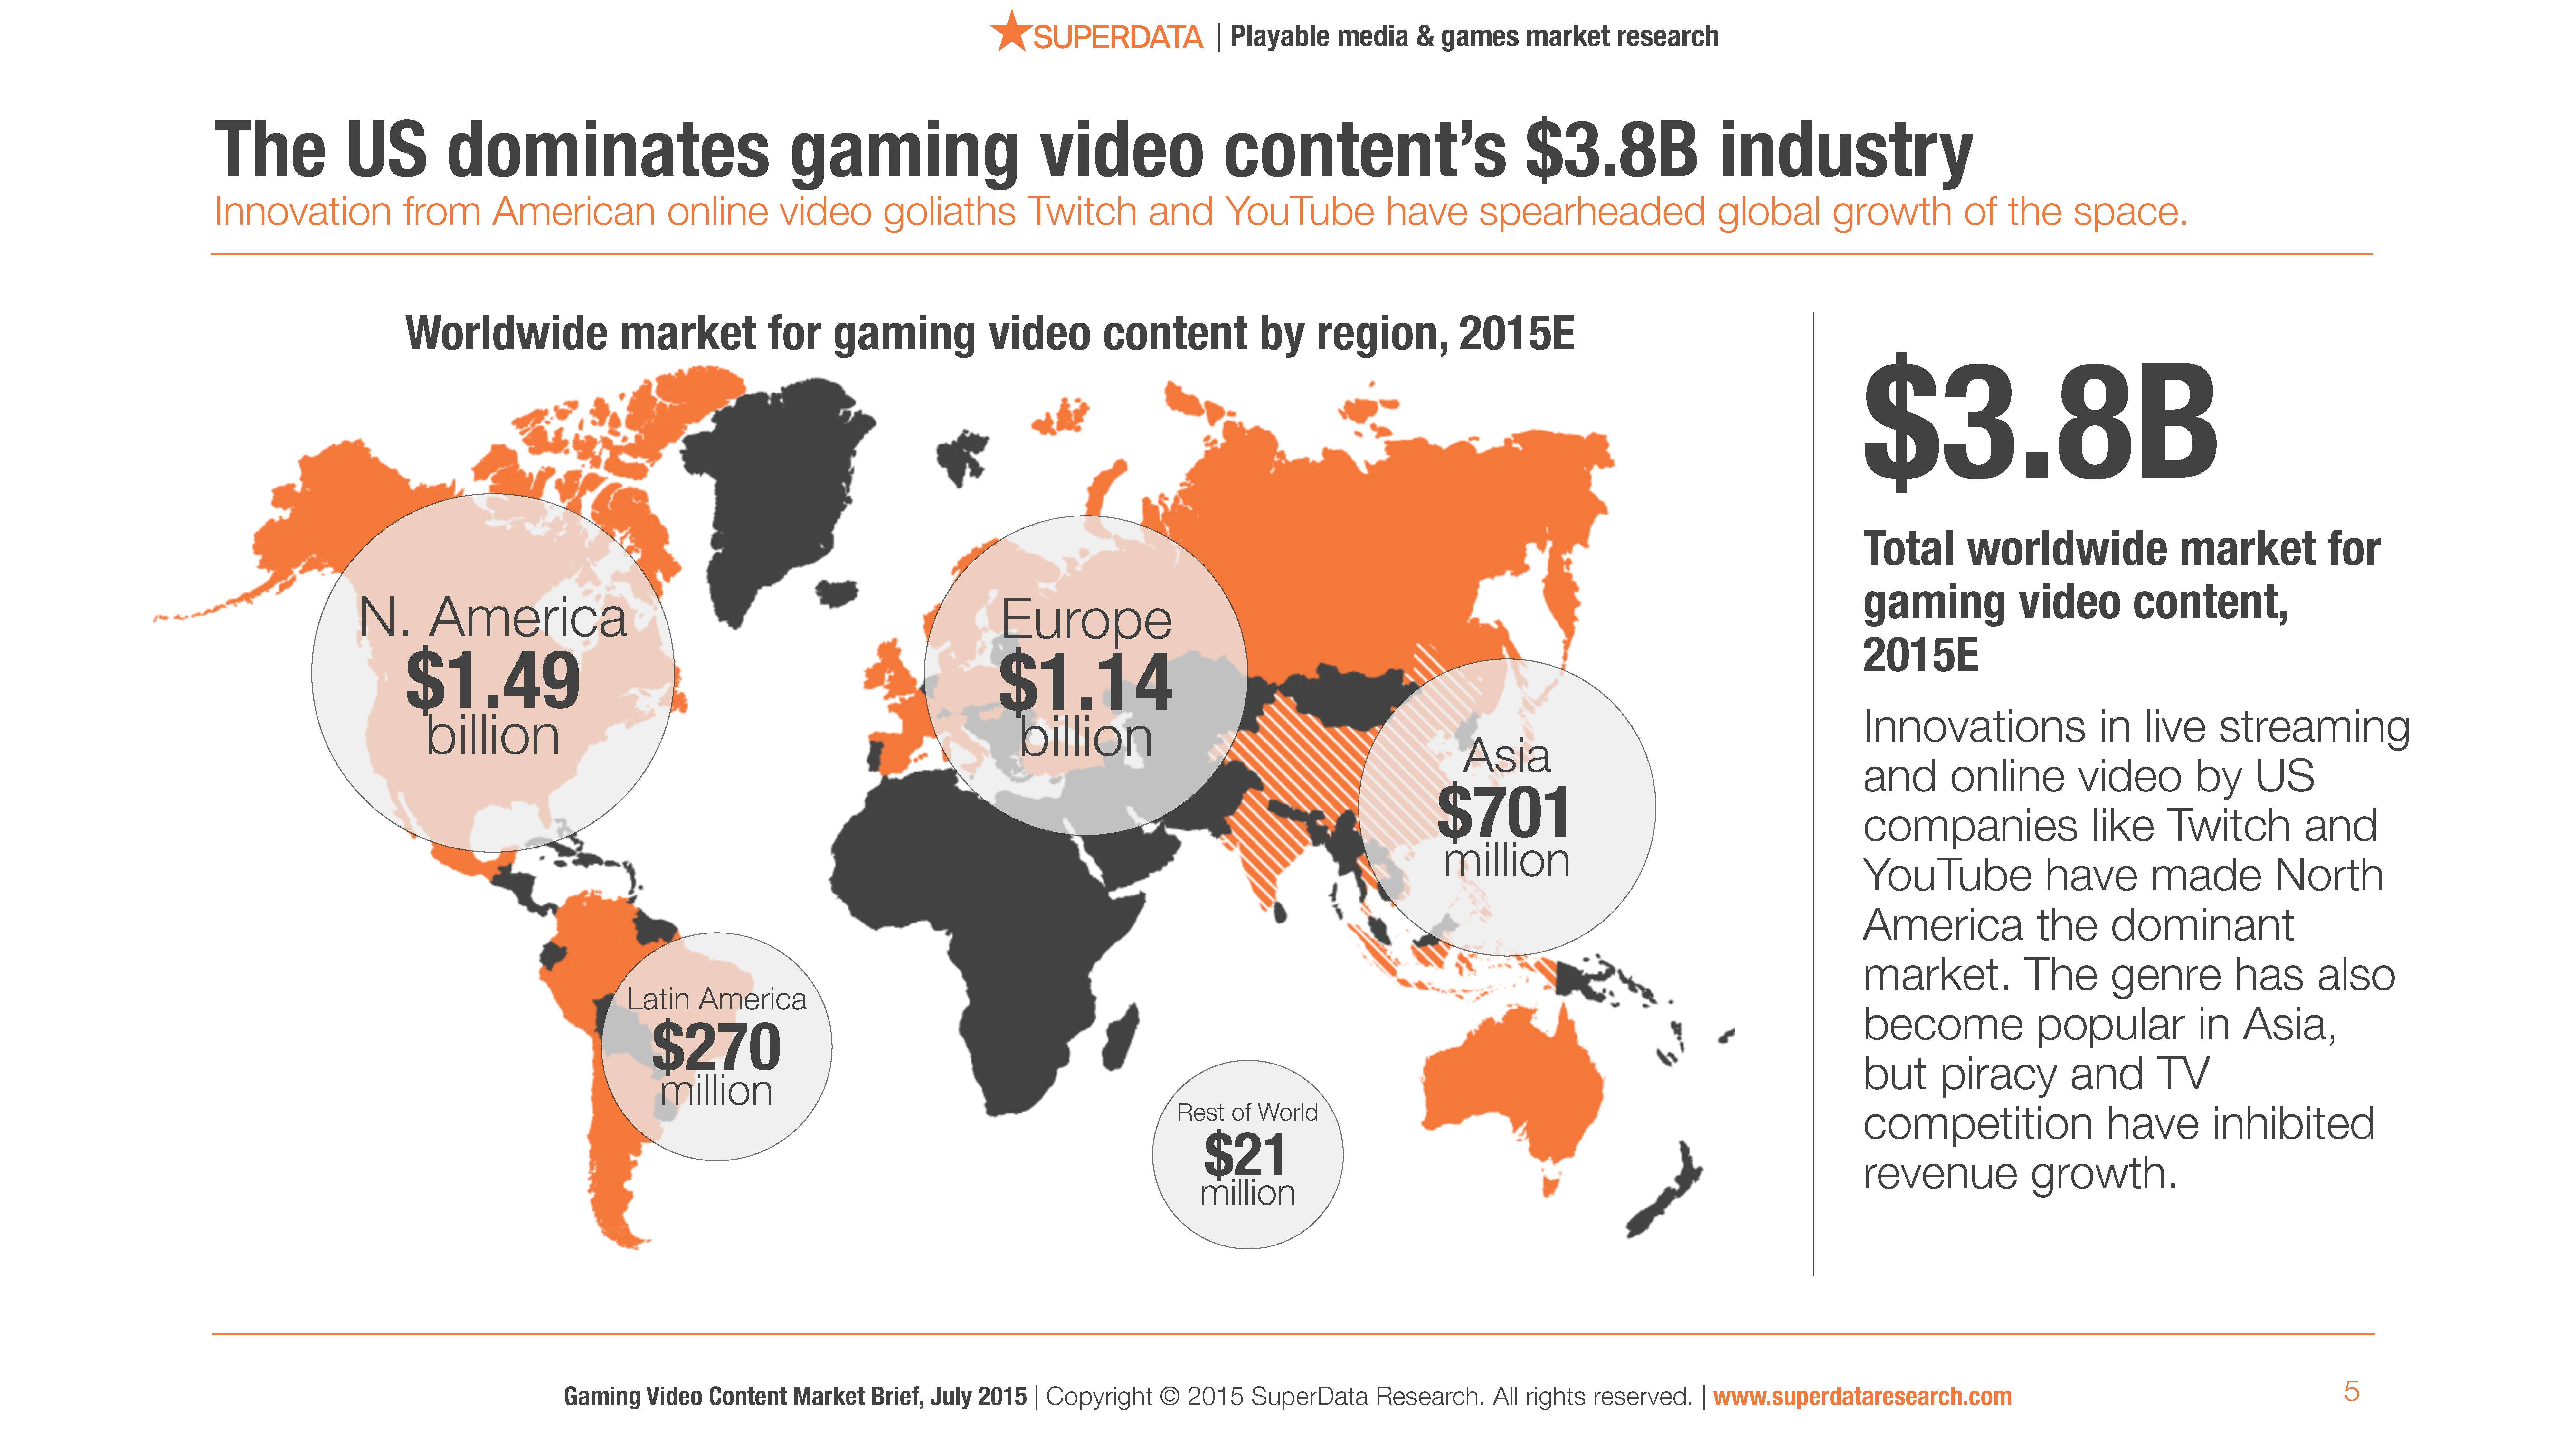 SuperData_Deliverable_Gaming_Video_Content_Market_Brief_2015_(1)-5